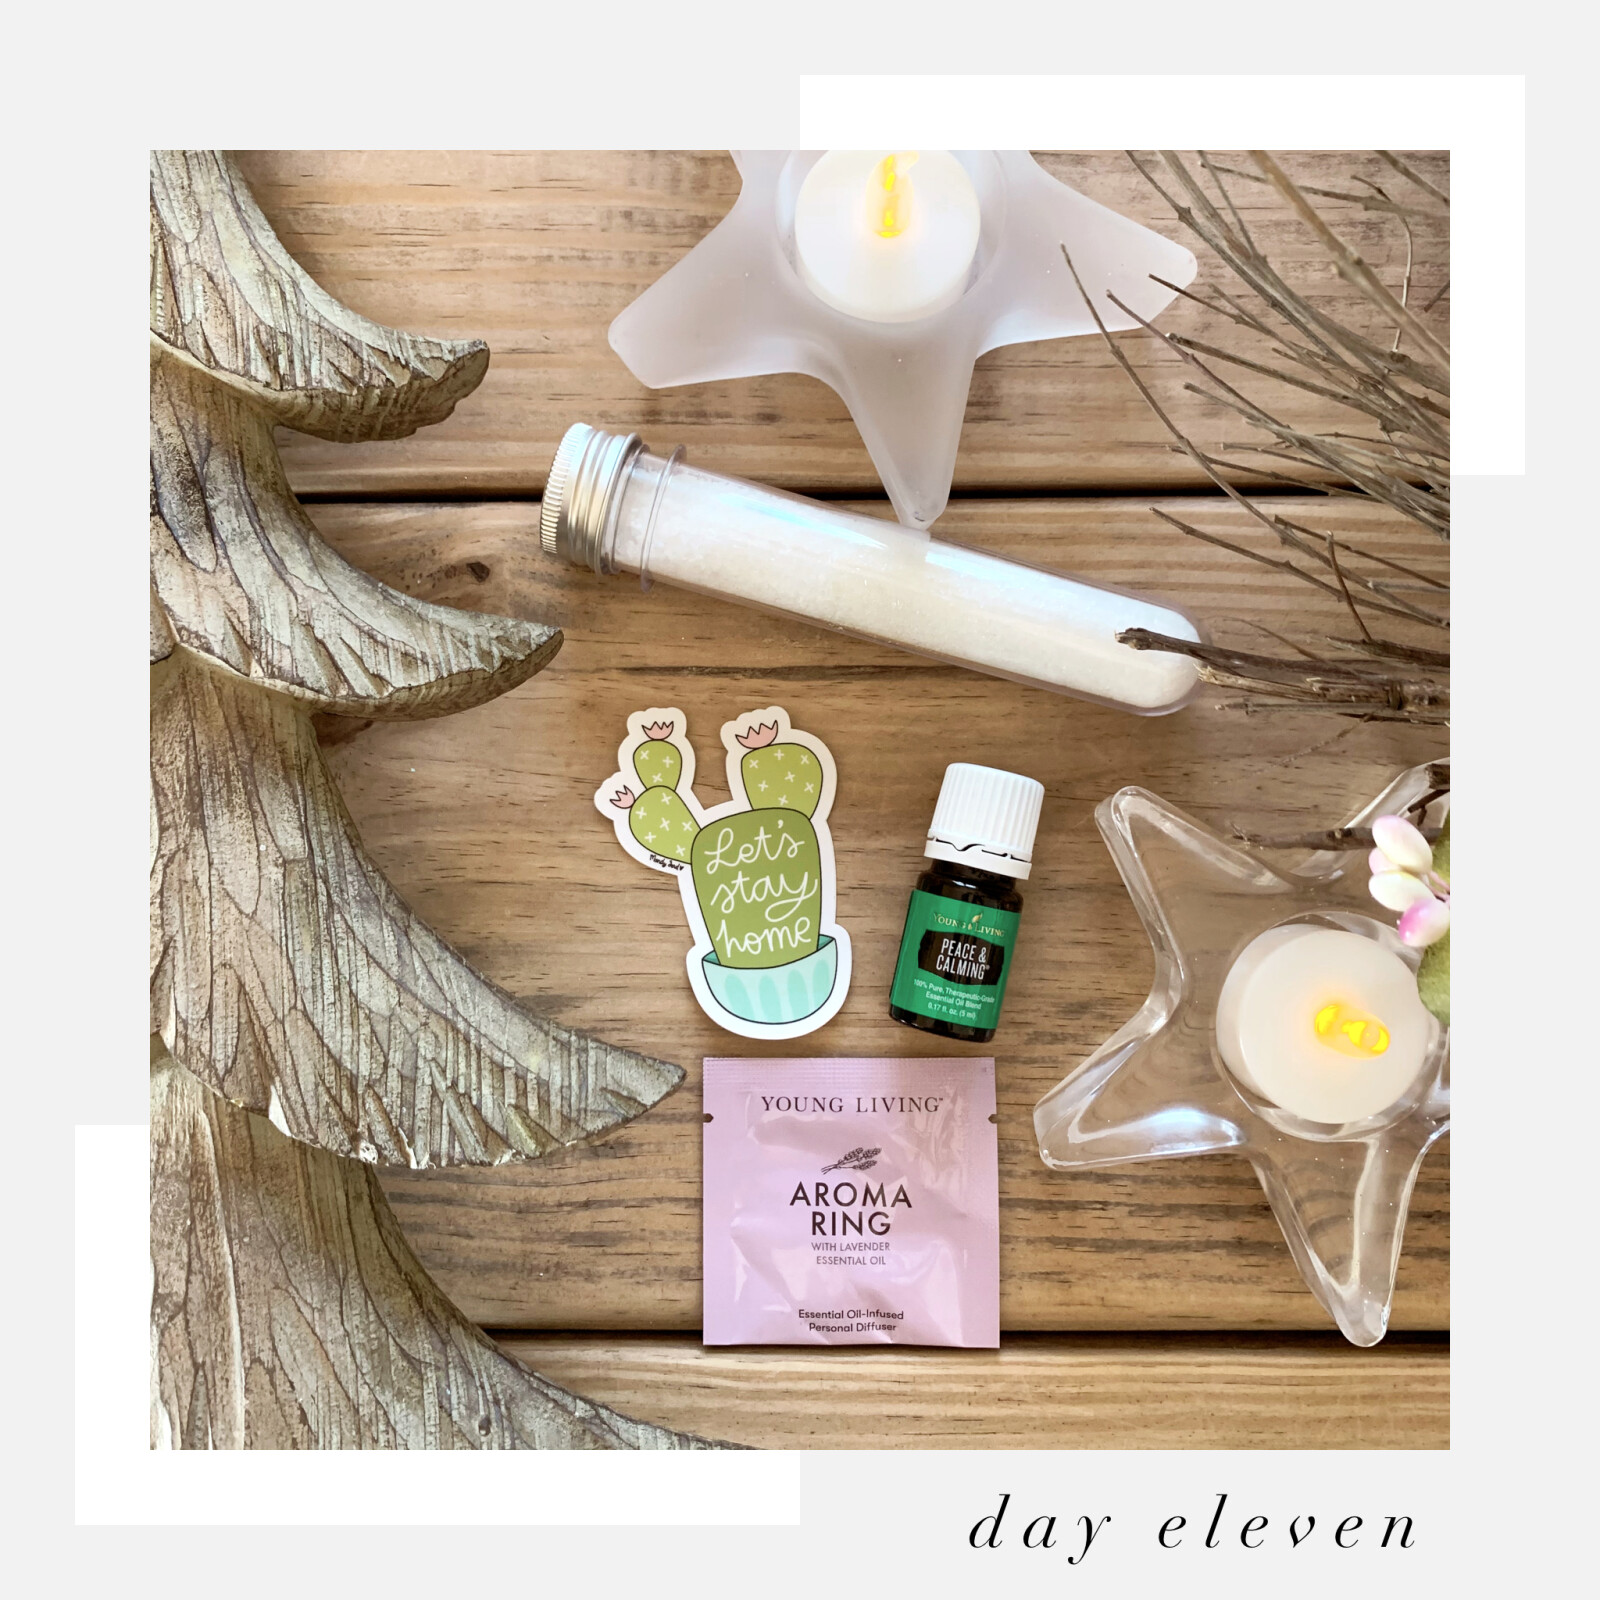 12 Days of Giveaways: Day 11 - Let's Stay Home